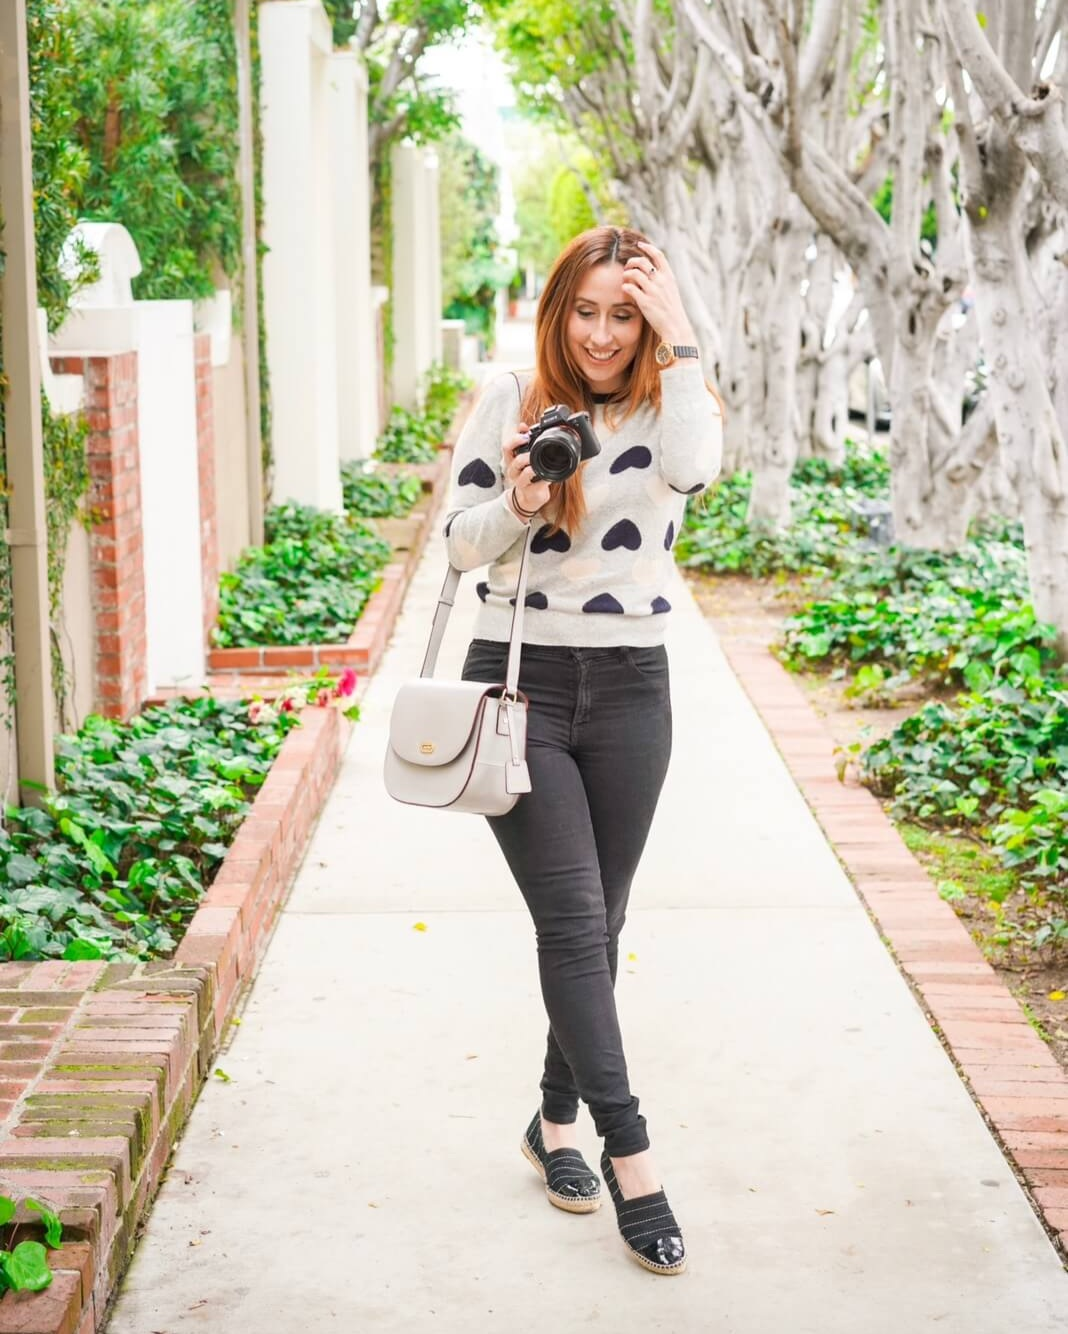 The Claremont by Lo&Sons is my favorite camera bag for women.